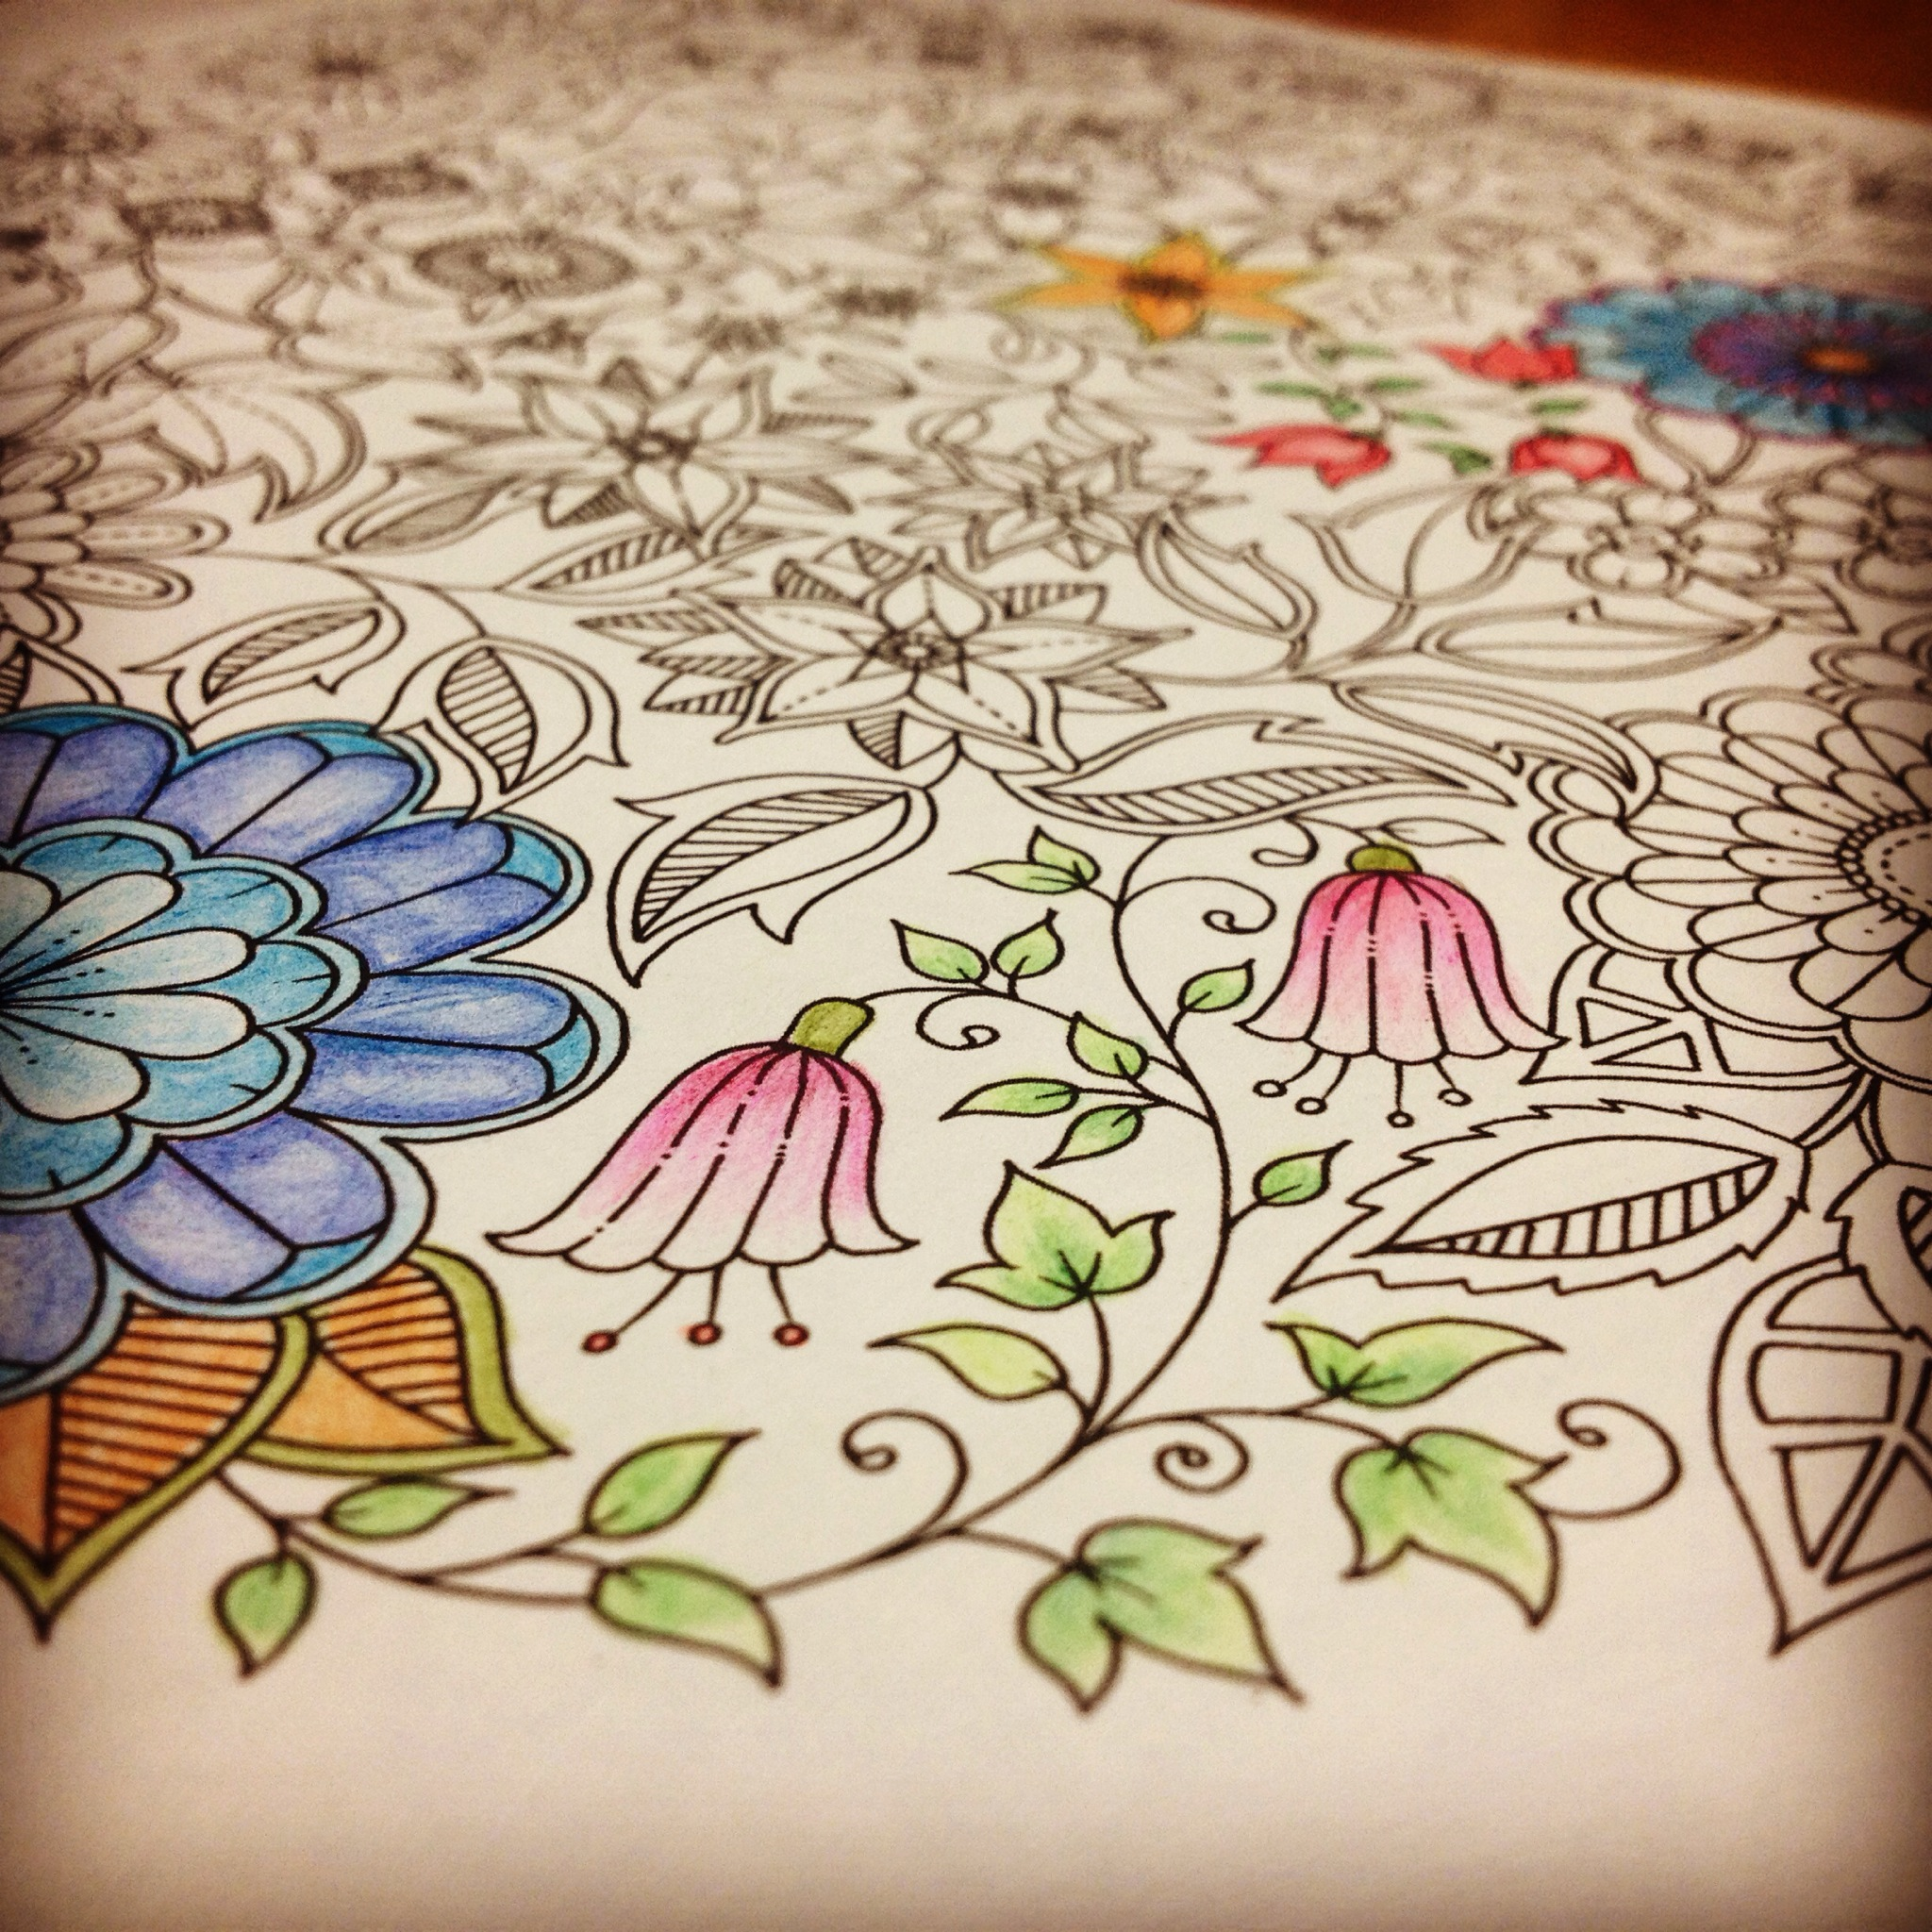 Secret Garden By Johanna Basford Is A Coloring Book Though Not The Kind We Had Fun With When Young